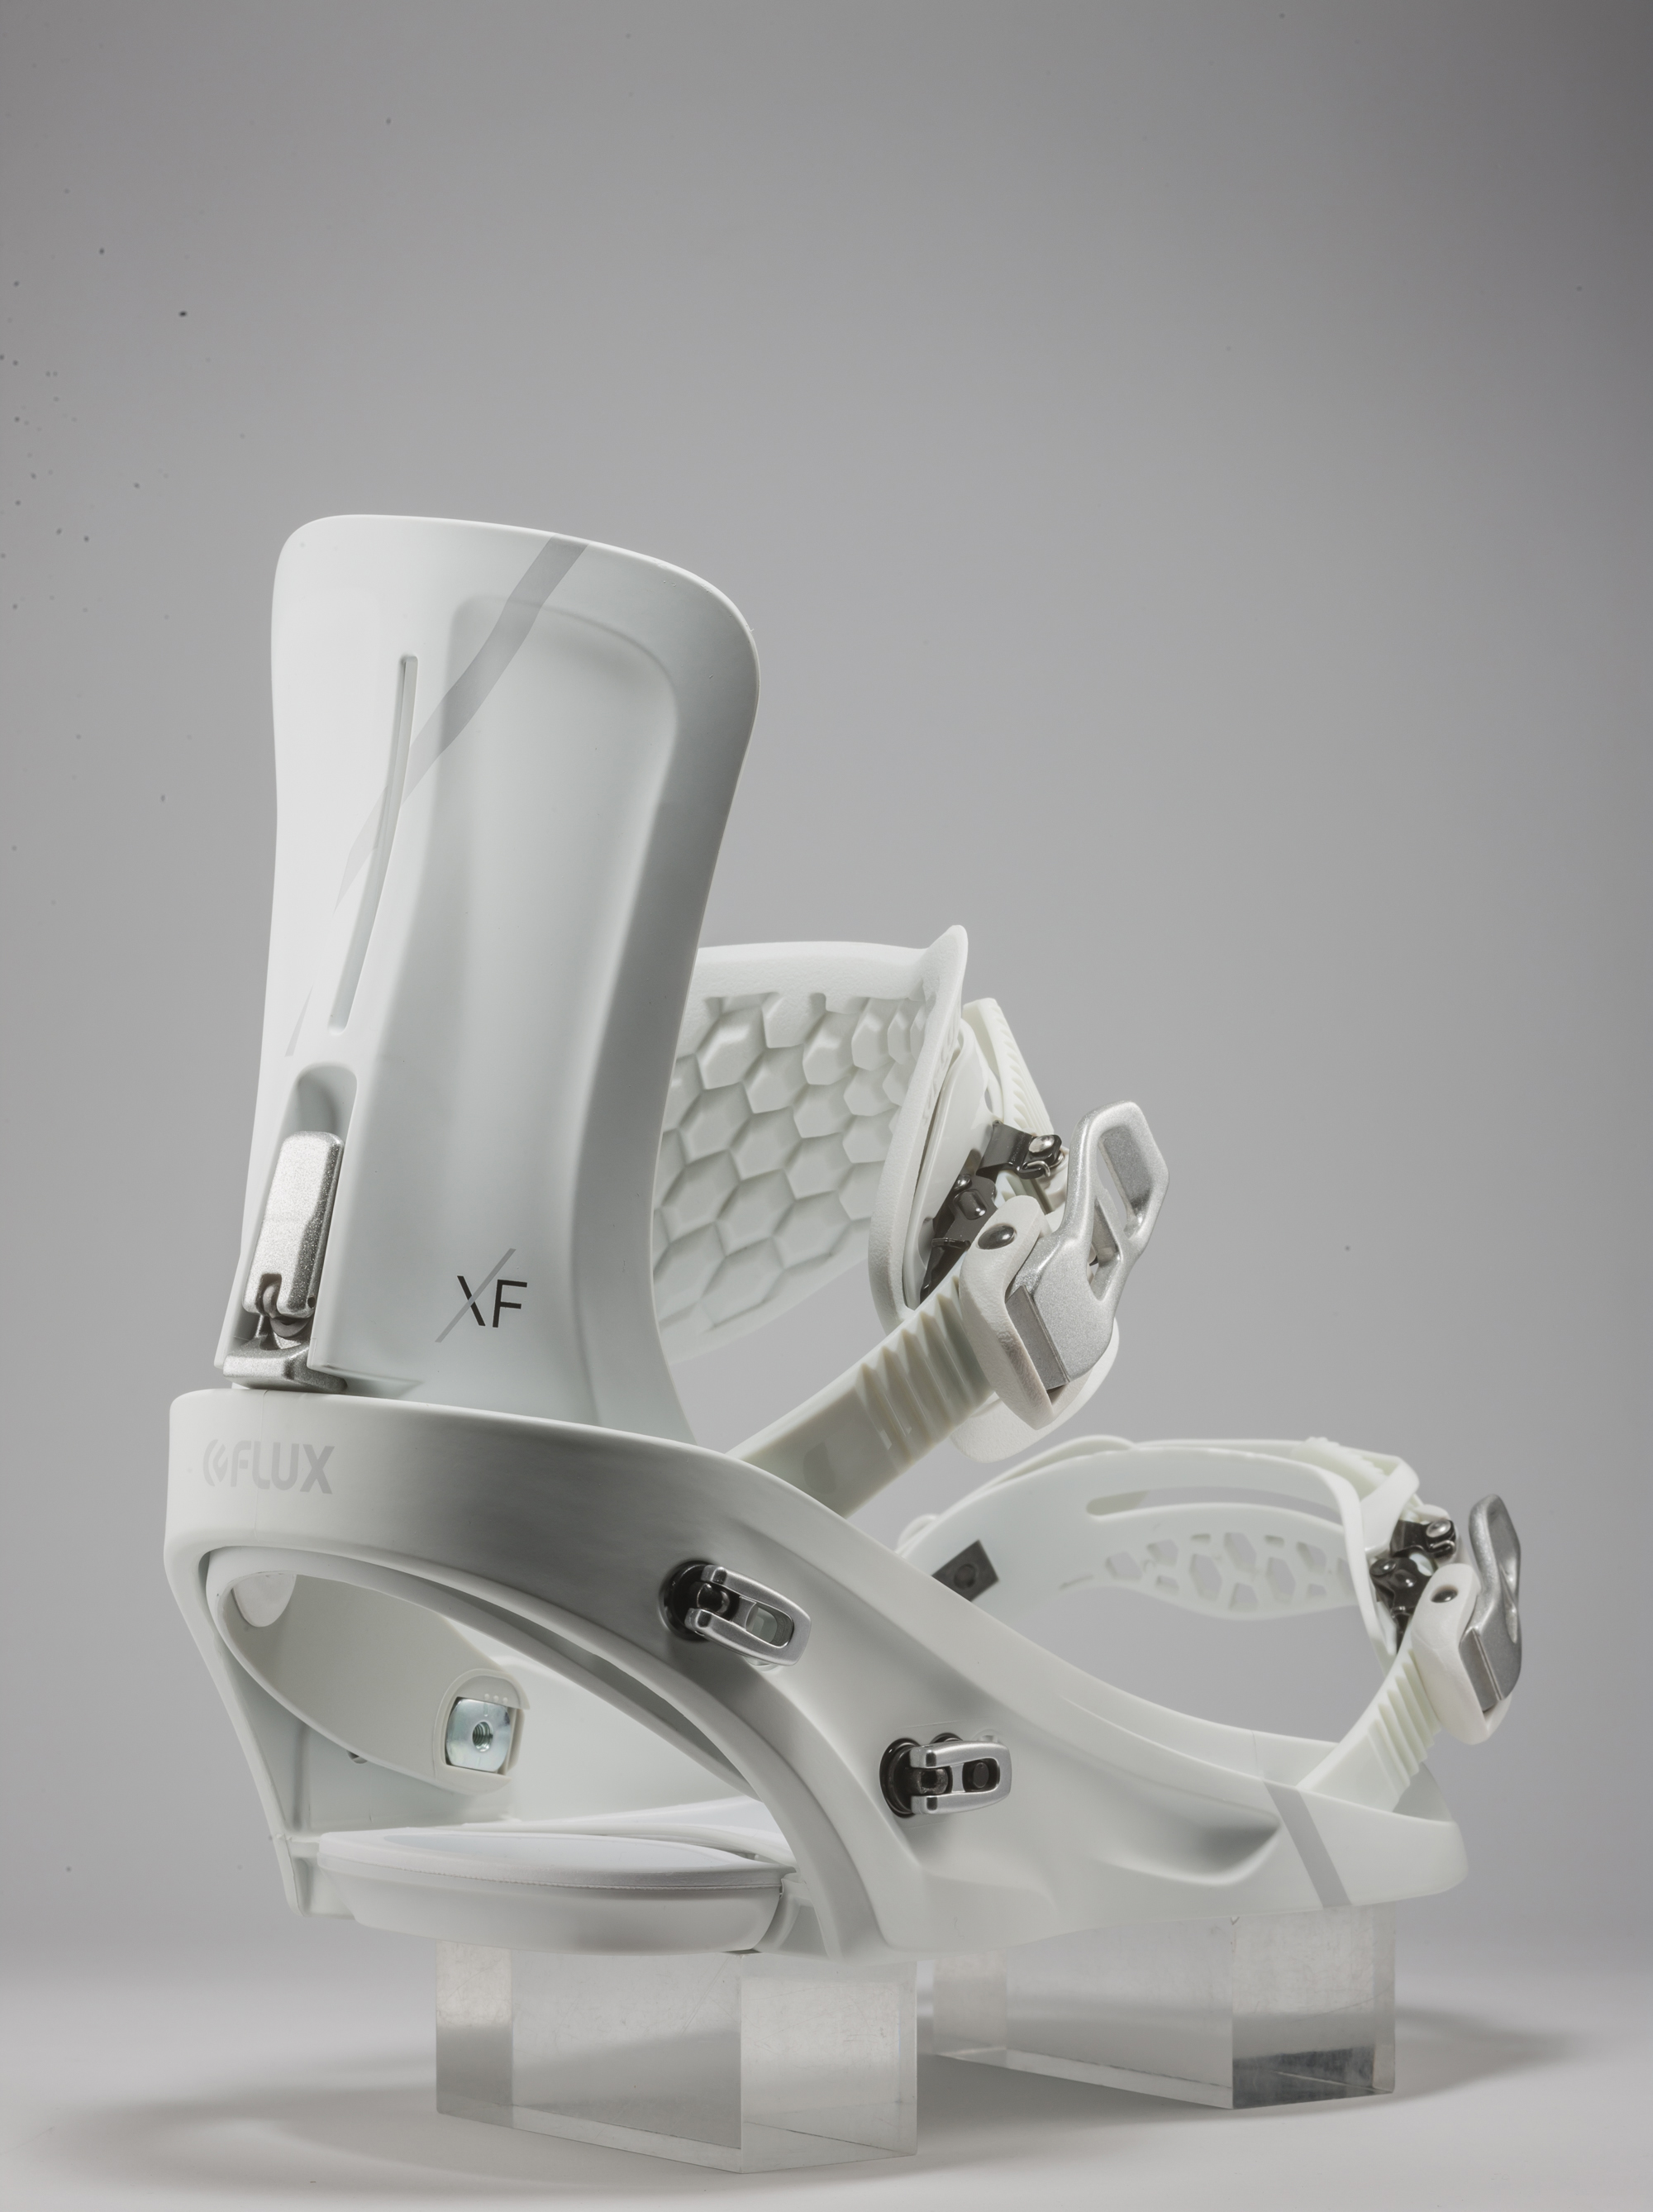 Крепеления FLUX XF 18-19 (White) 0